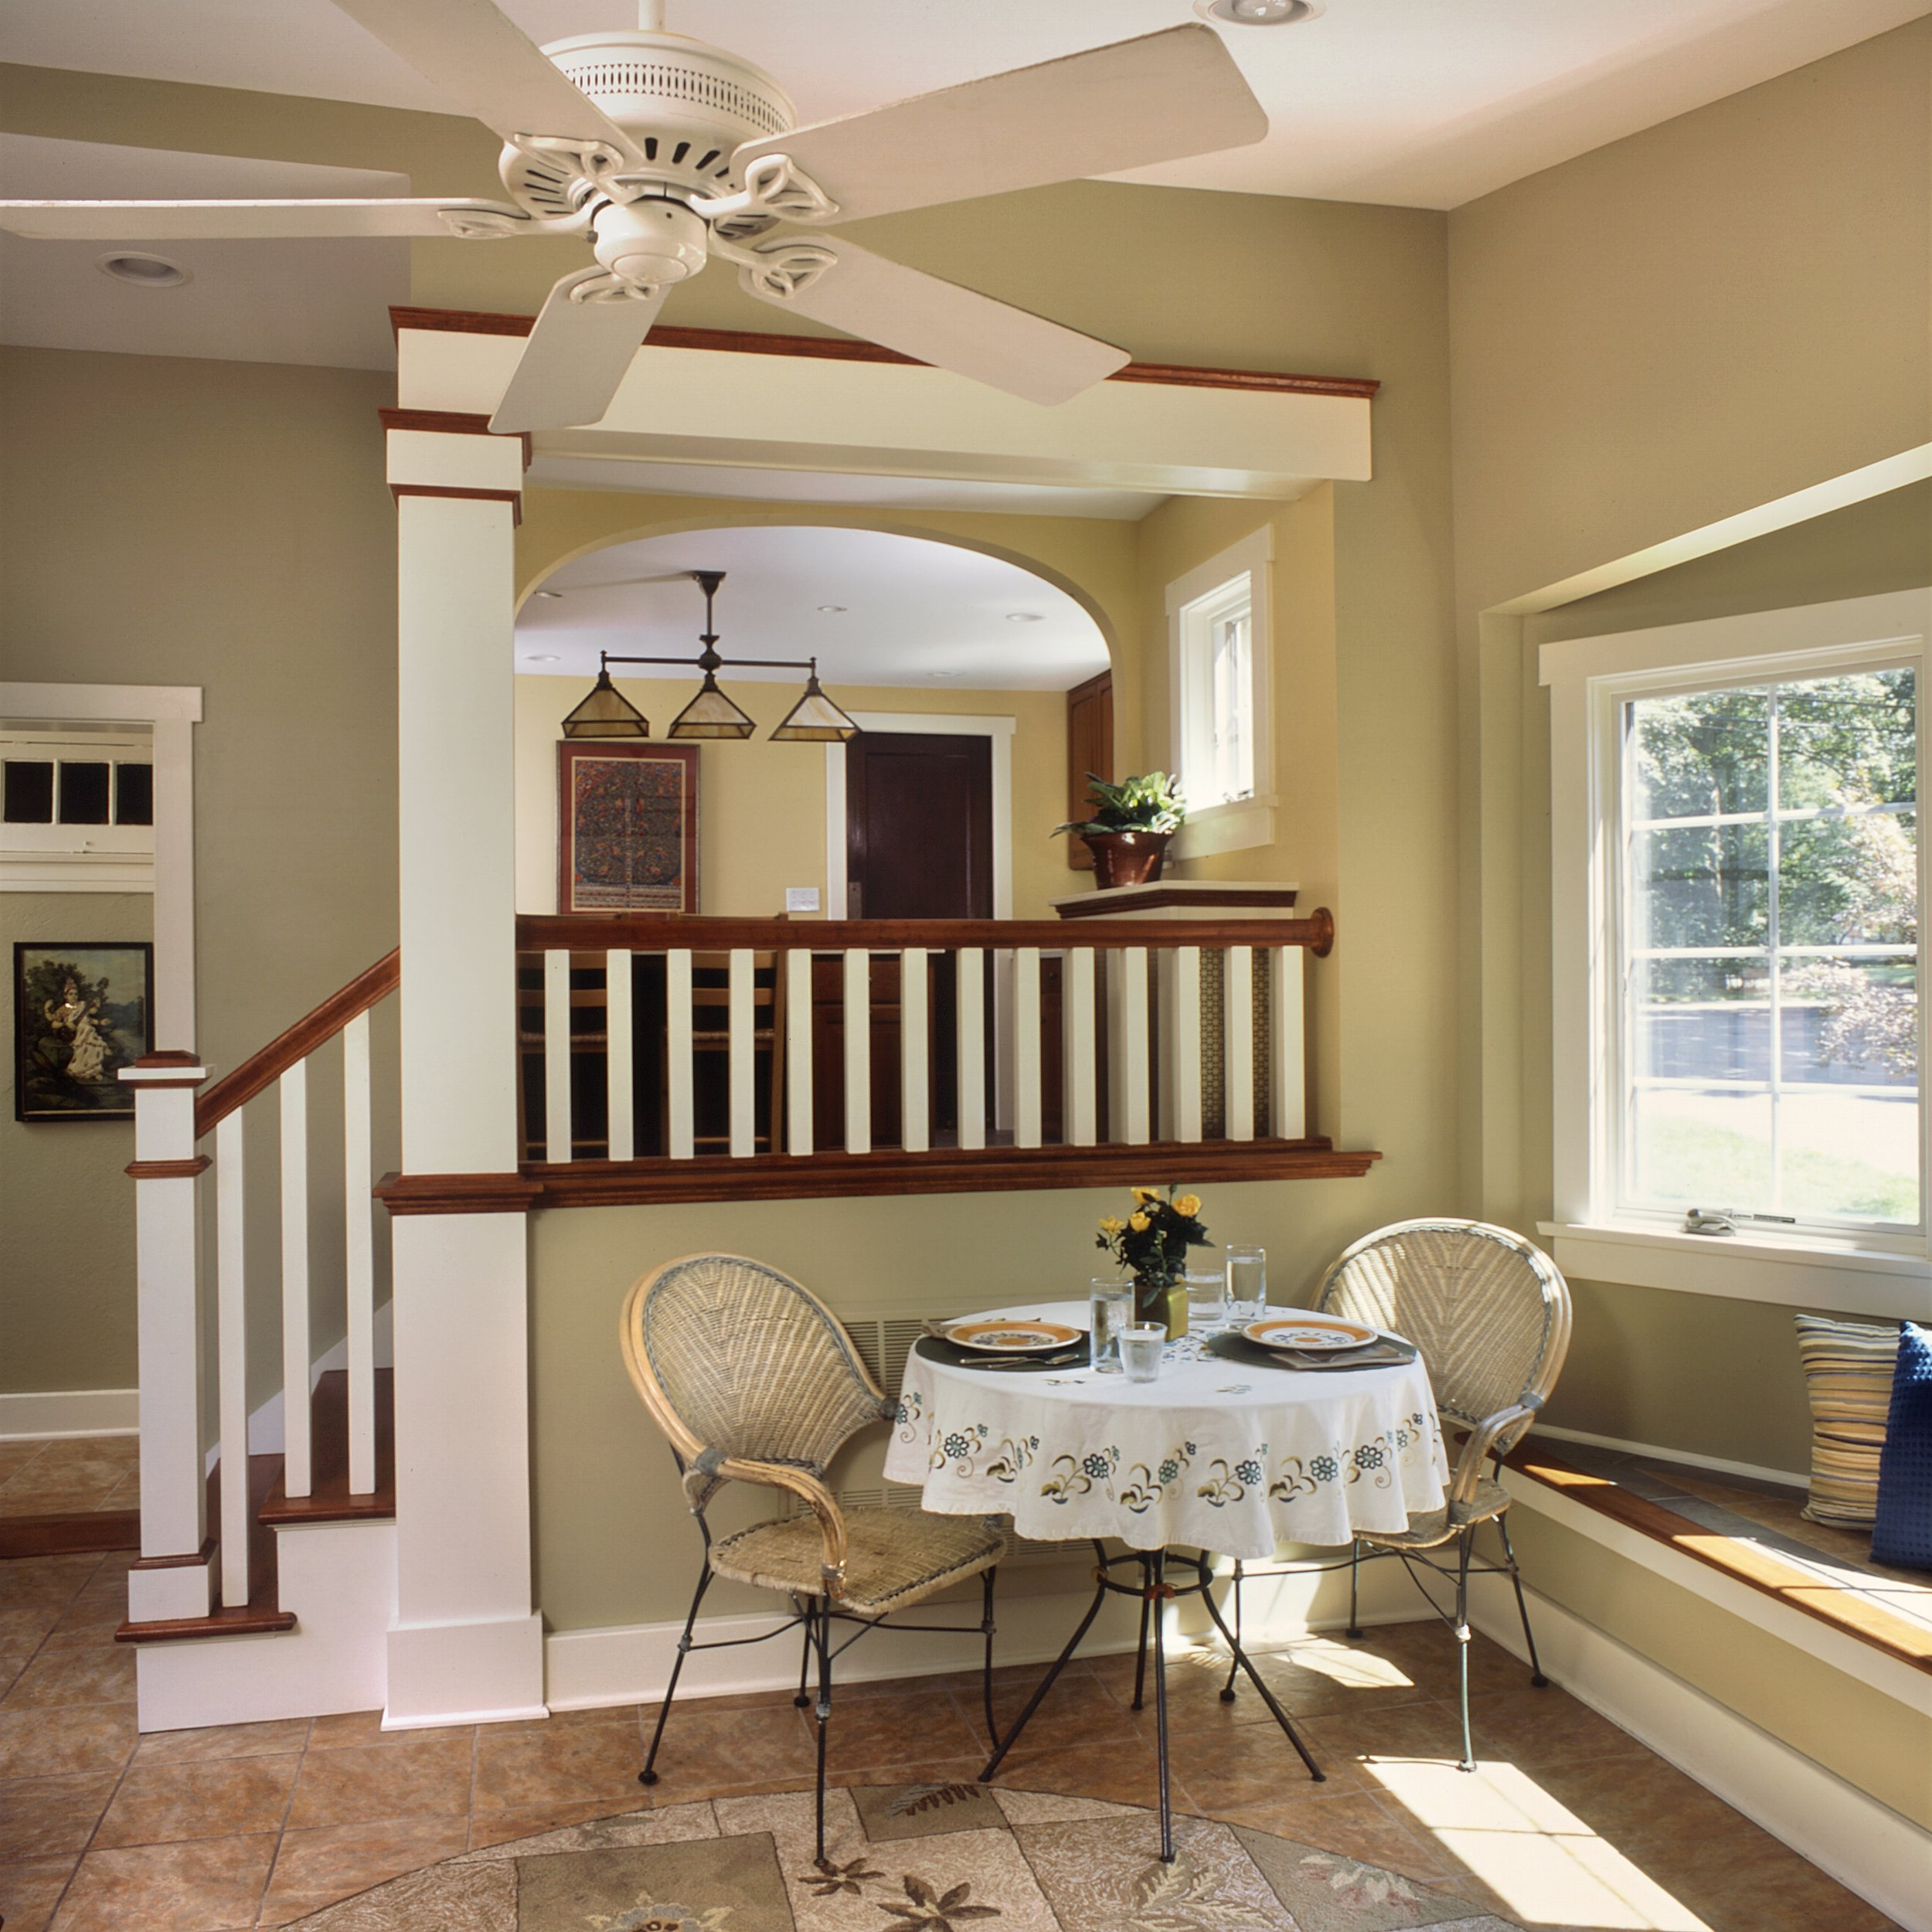 At the stairway and alcove between the Sun-room and the Kitchen, we mixed stained trim with painted trim, to make a transition from the stained cabinetry of the Kitchen to the painted walls and trim of the Sun-room.